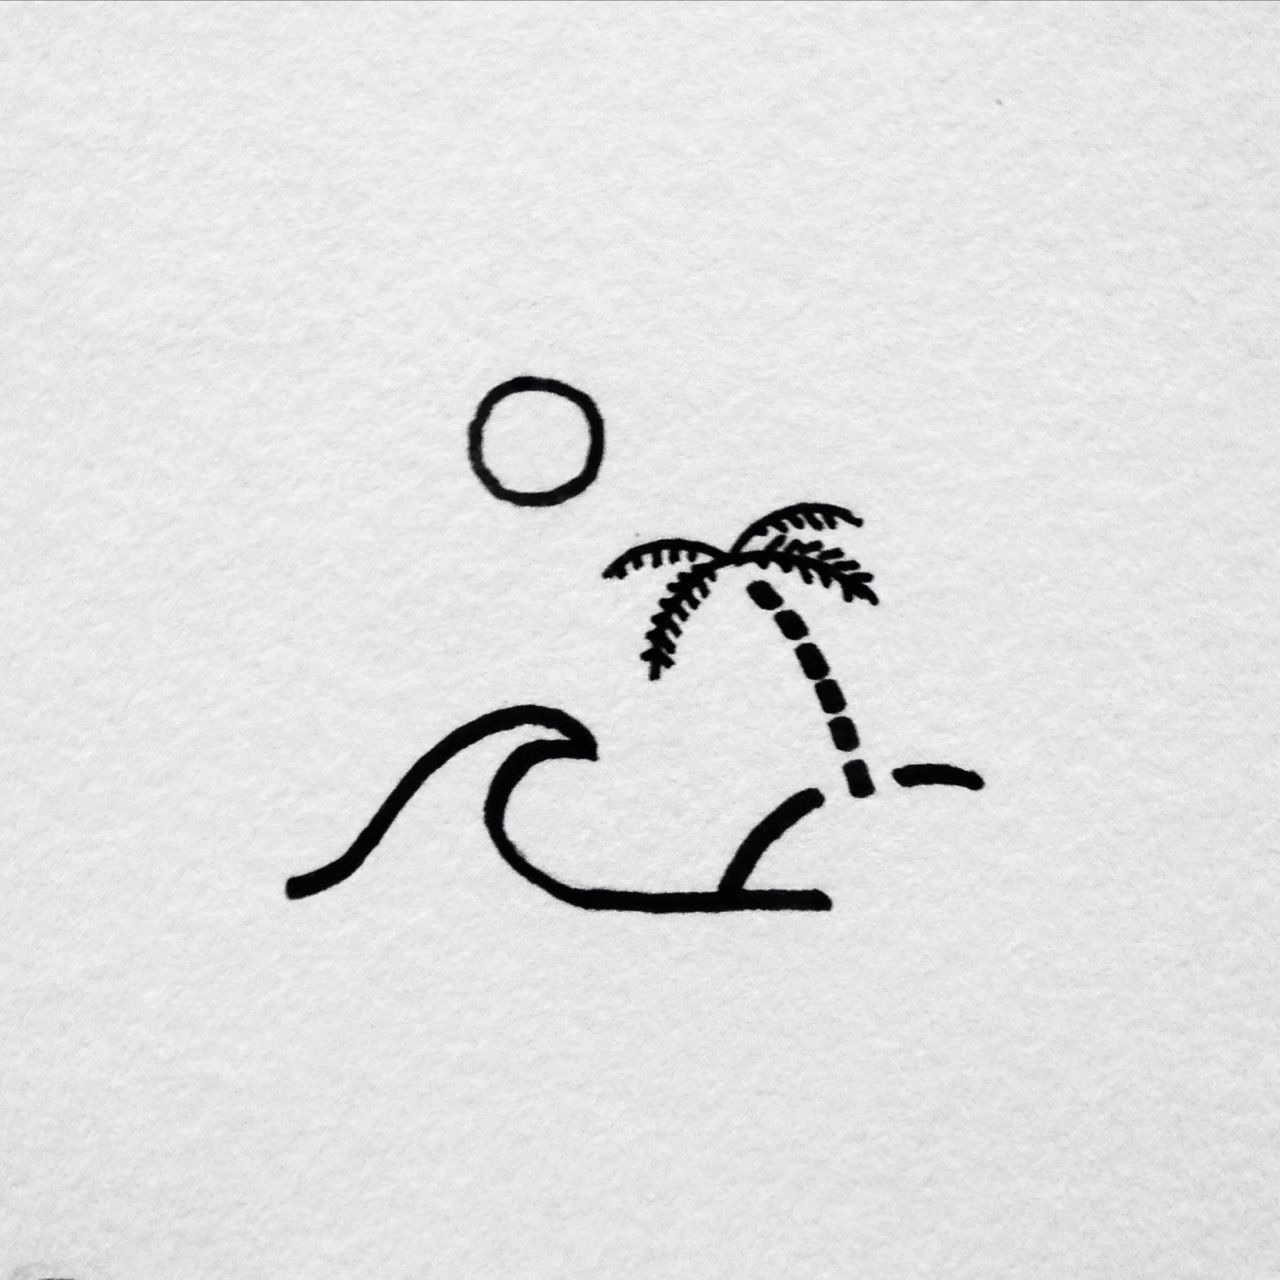 png free download Drawing something simple. David rollyn doodling in